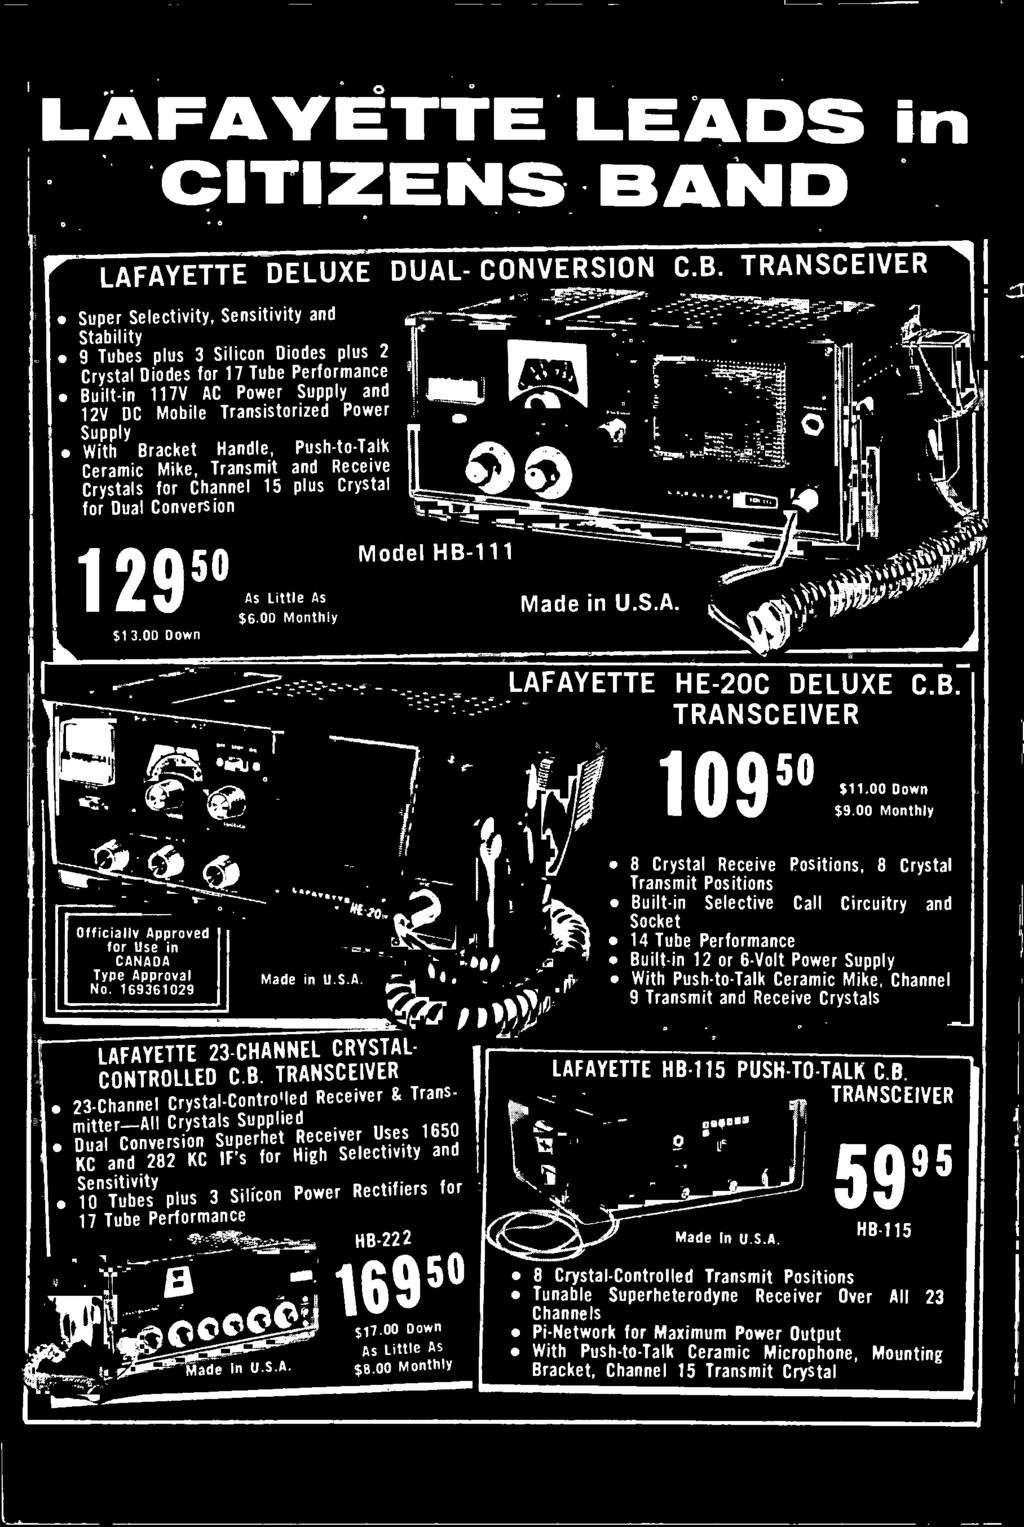 The Official Cb Radio Magazine Citizens Band Journal All About Ignition Circuit Diagram For 1935 Chevrolet Master De Luxe Standard And Truck Models 00 Monthly Model Hb 111 Laf